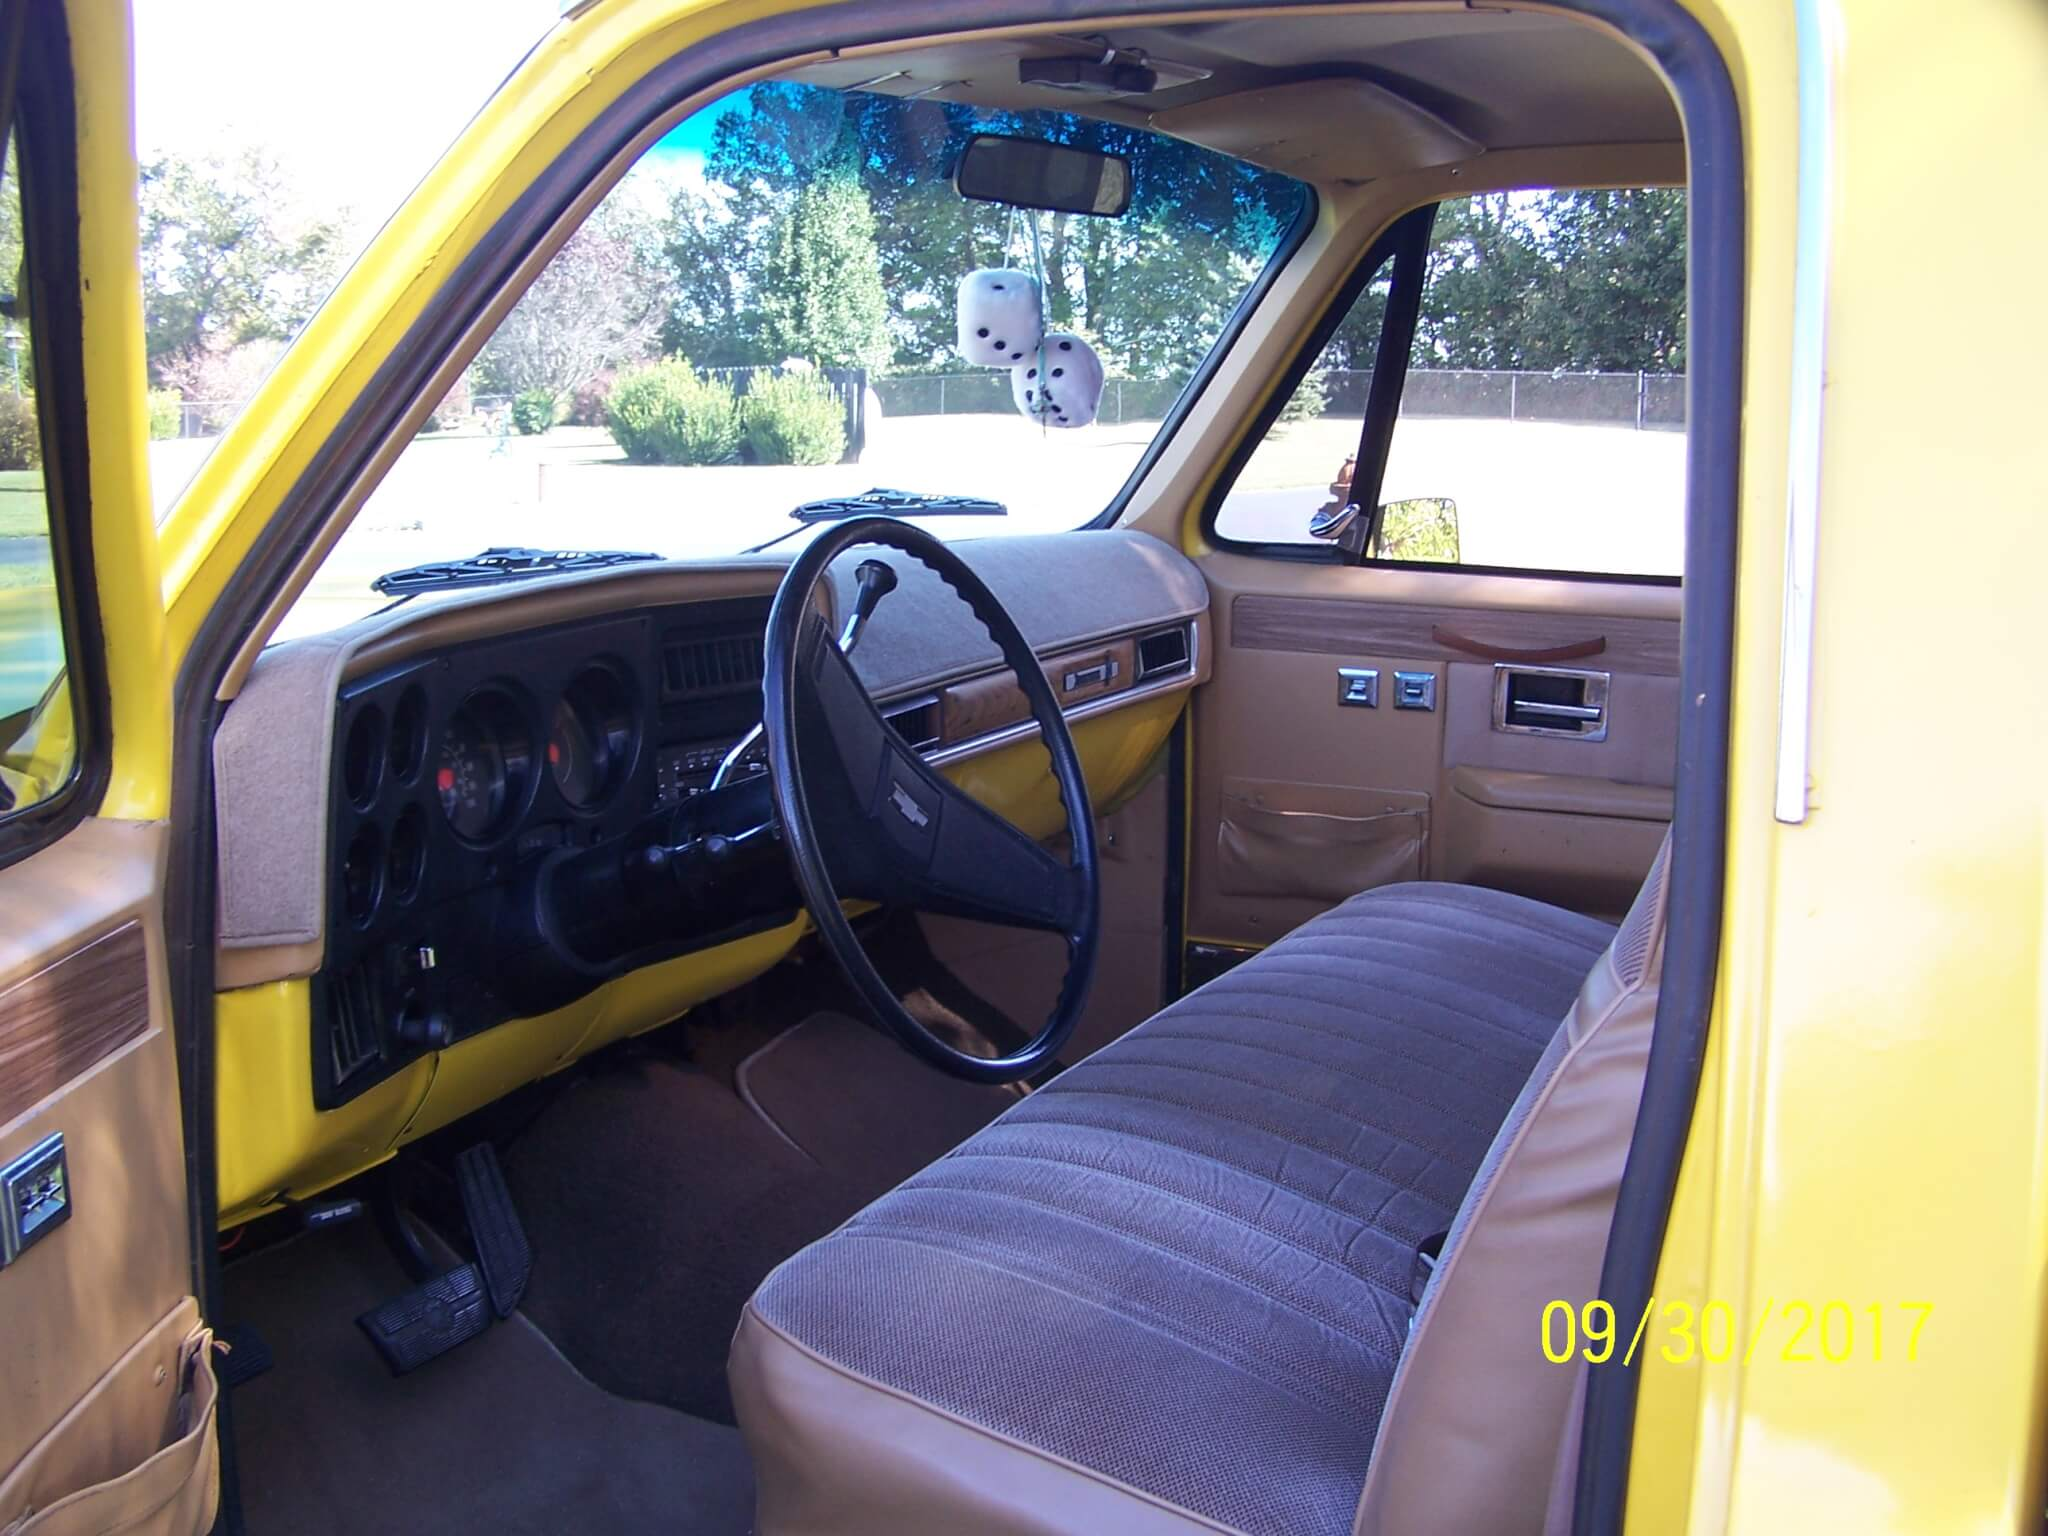 chevrolet interior detail trucks you to pressed media hard panels door single oct a show content that custom customized pages us chevy truck part six pickup the be on figure this showcased first find not d silverado news has at been en sema